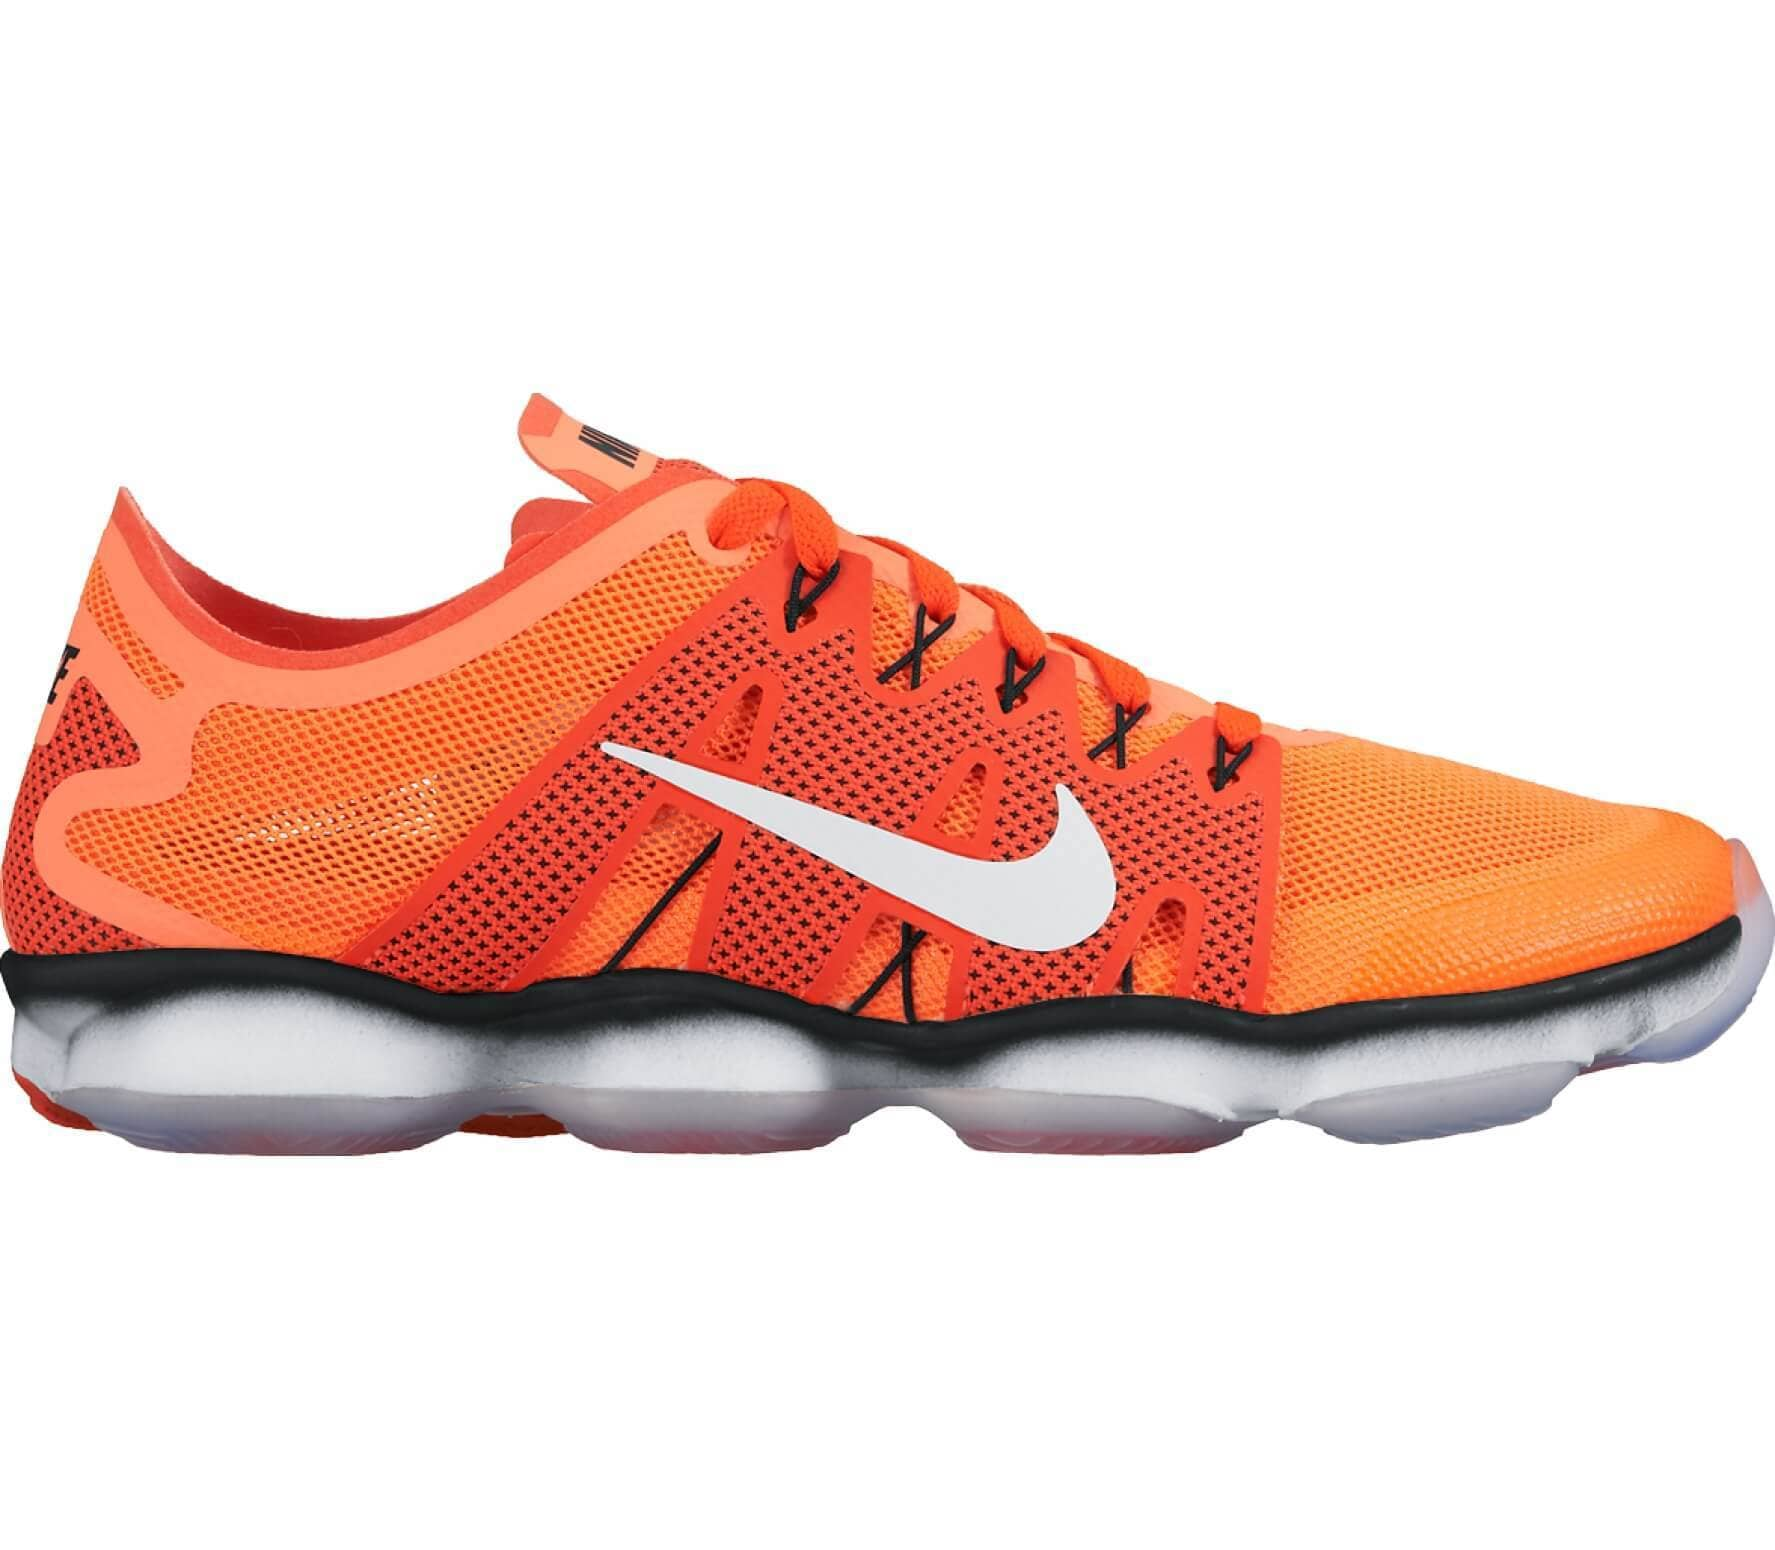 e0d1e2d3aeea Nike - Air Zoom Fit Agility 2 women s training shoes (orange dunkelorange)